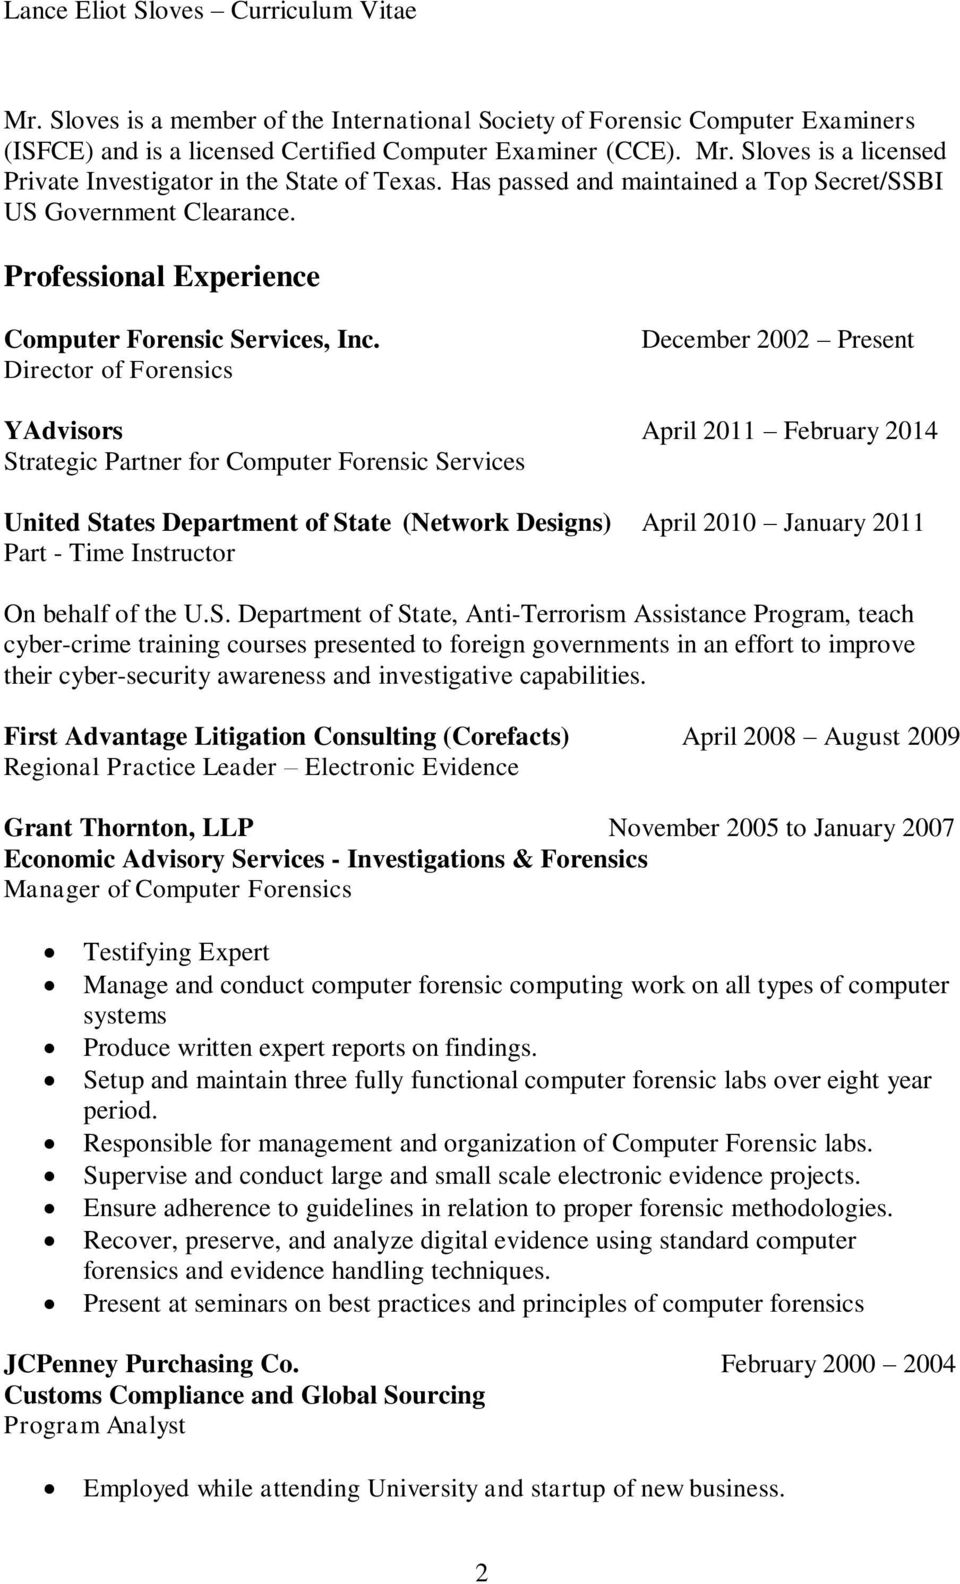 Director of Forensics December 2002 Present YAdvisors April 2011 February 2014 Strategic Partner for Computer Forensic Services United States Department of State (Network Designs) April 2010 January